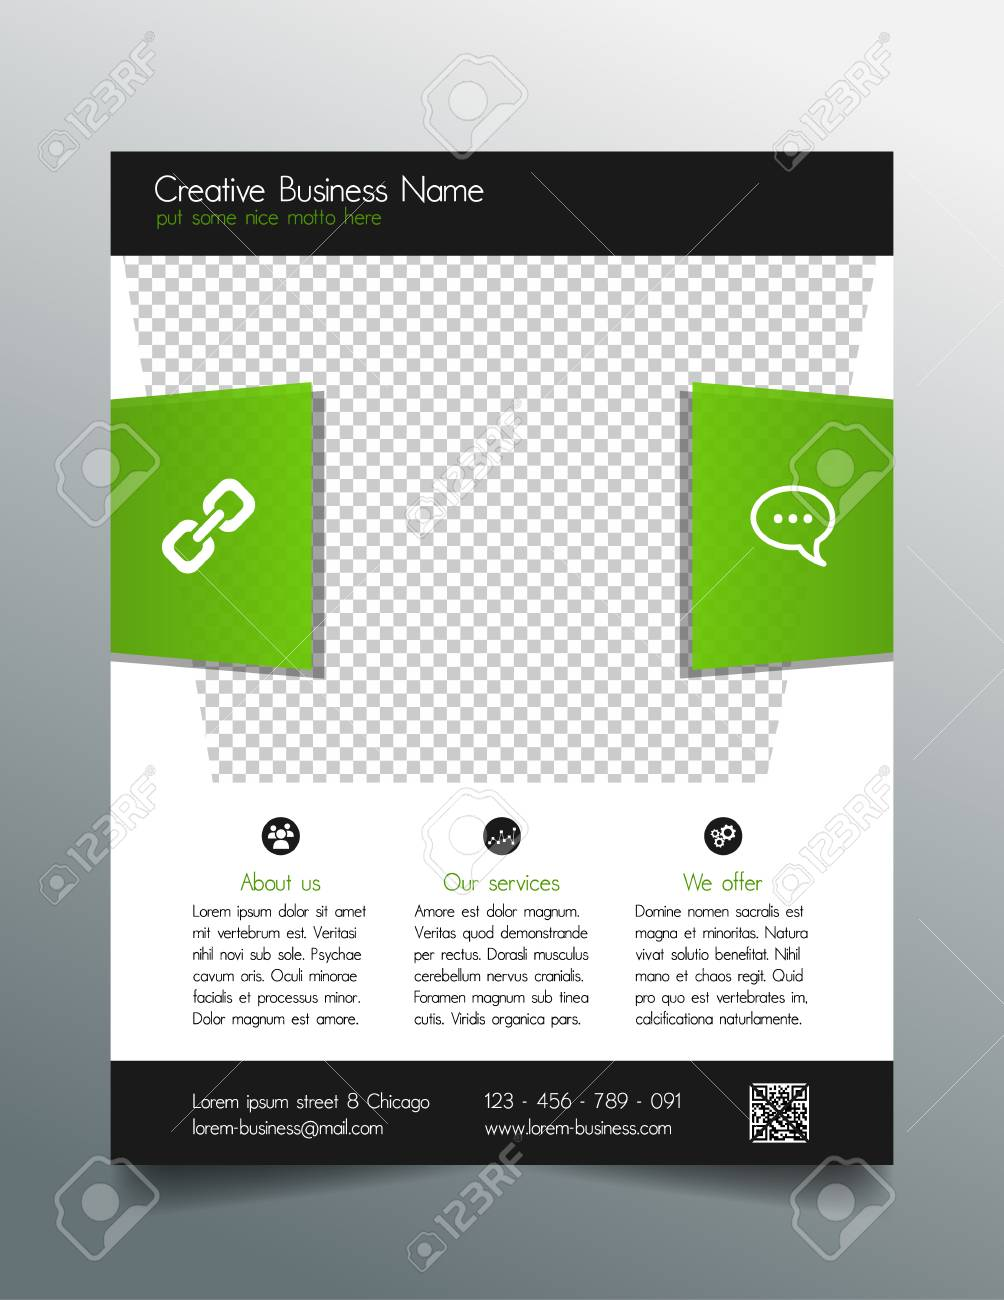 Corporate Business Flyer Template Modern Fresh Design Royalty Free